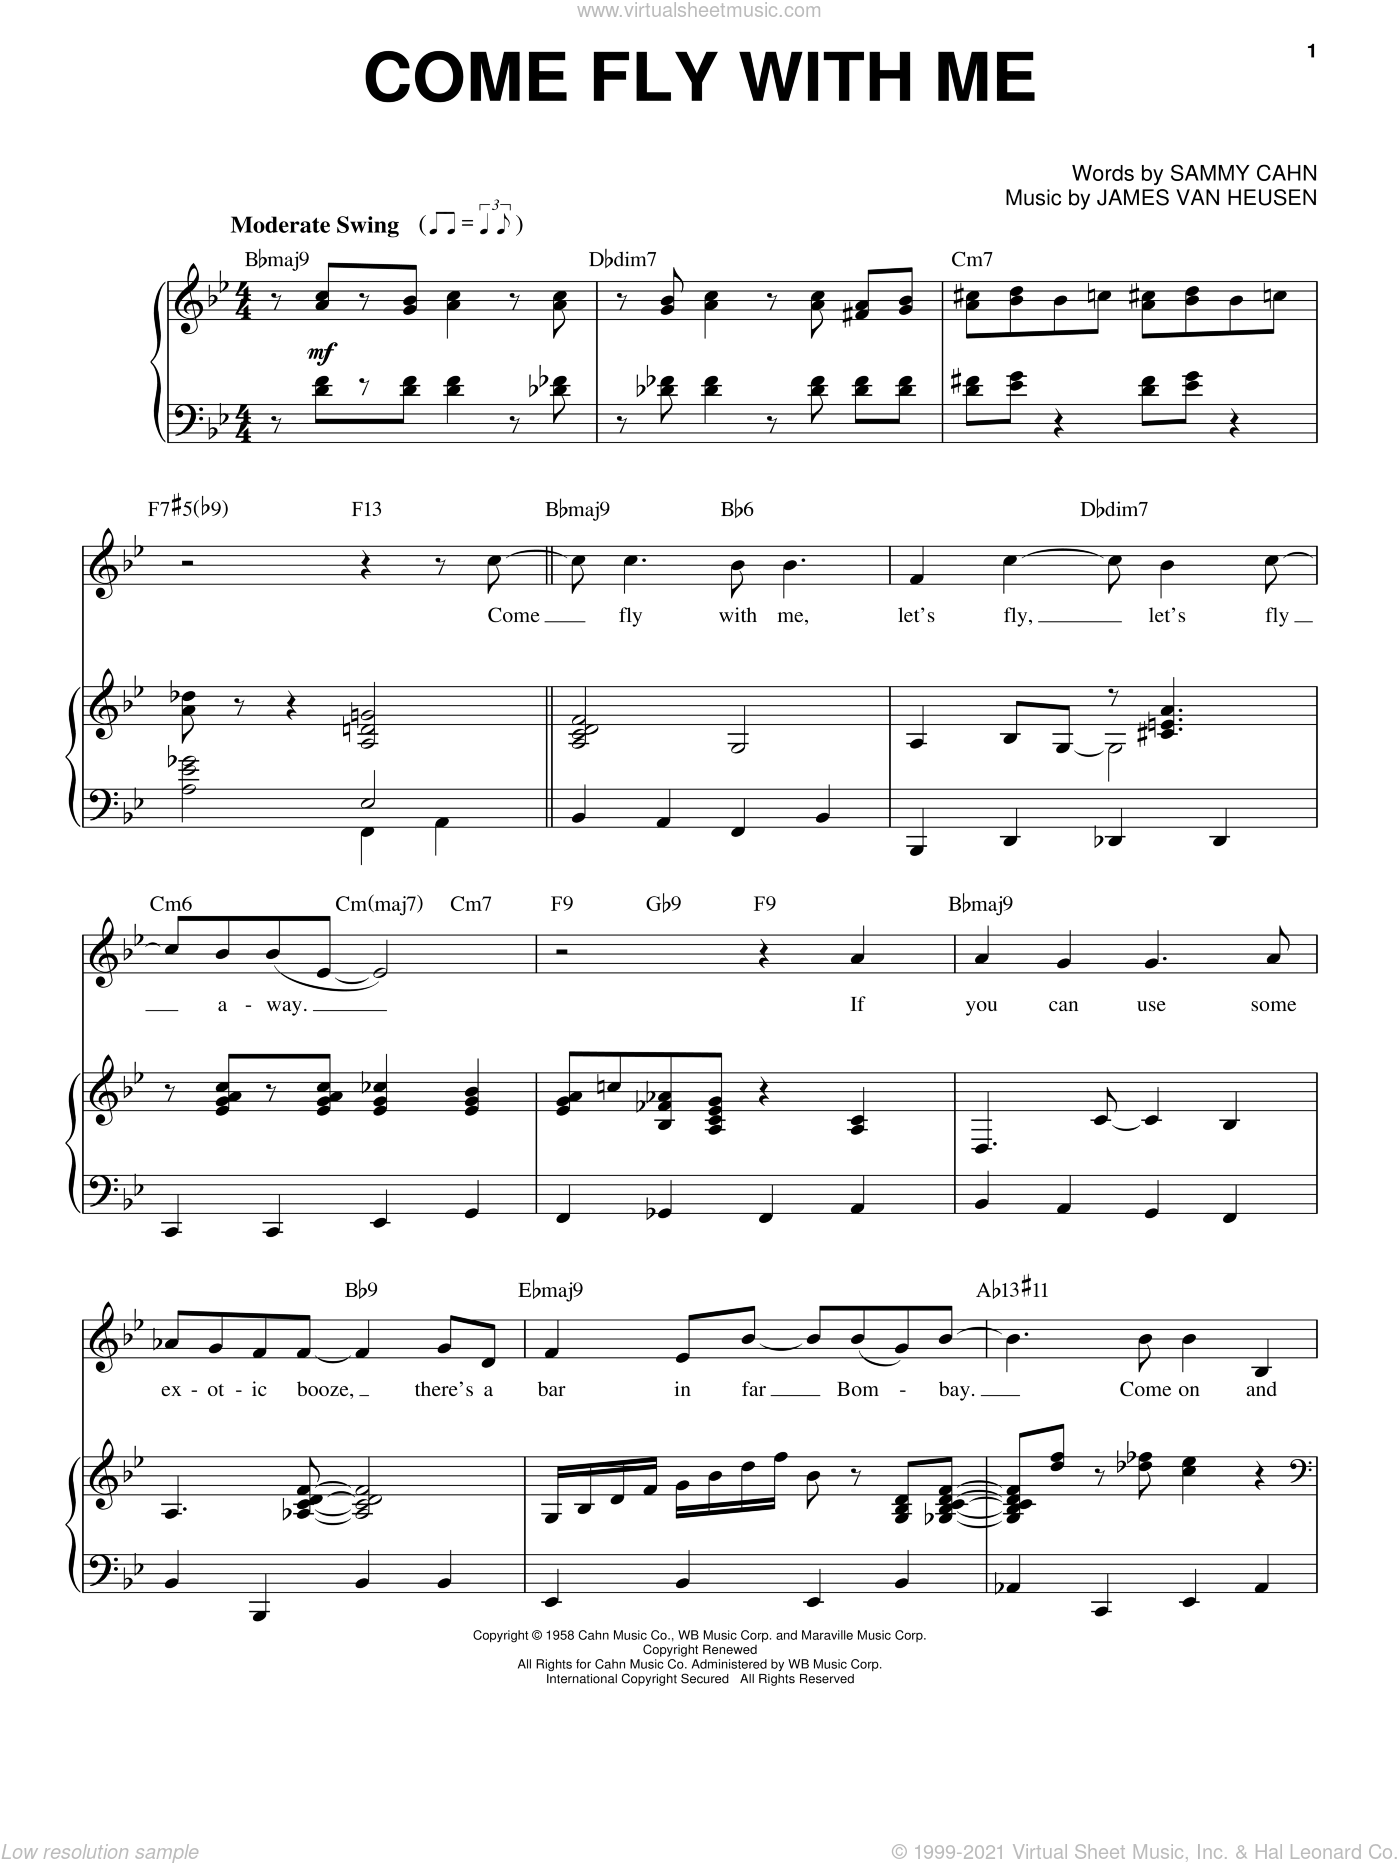 Come Fly With Me sheet music for voice and piano by Frank Sinatra, Dean Martin, Sammy Davis, Jr., Jimmy van Heusen and Sammy Cahn, intermediate. Score Image Preview.